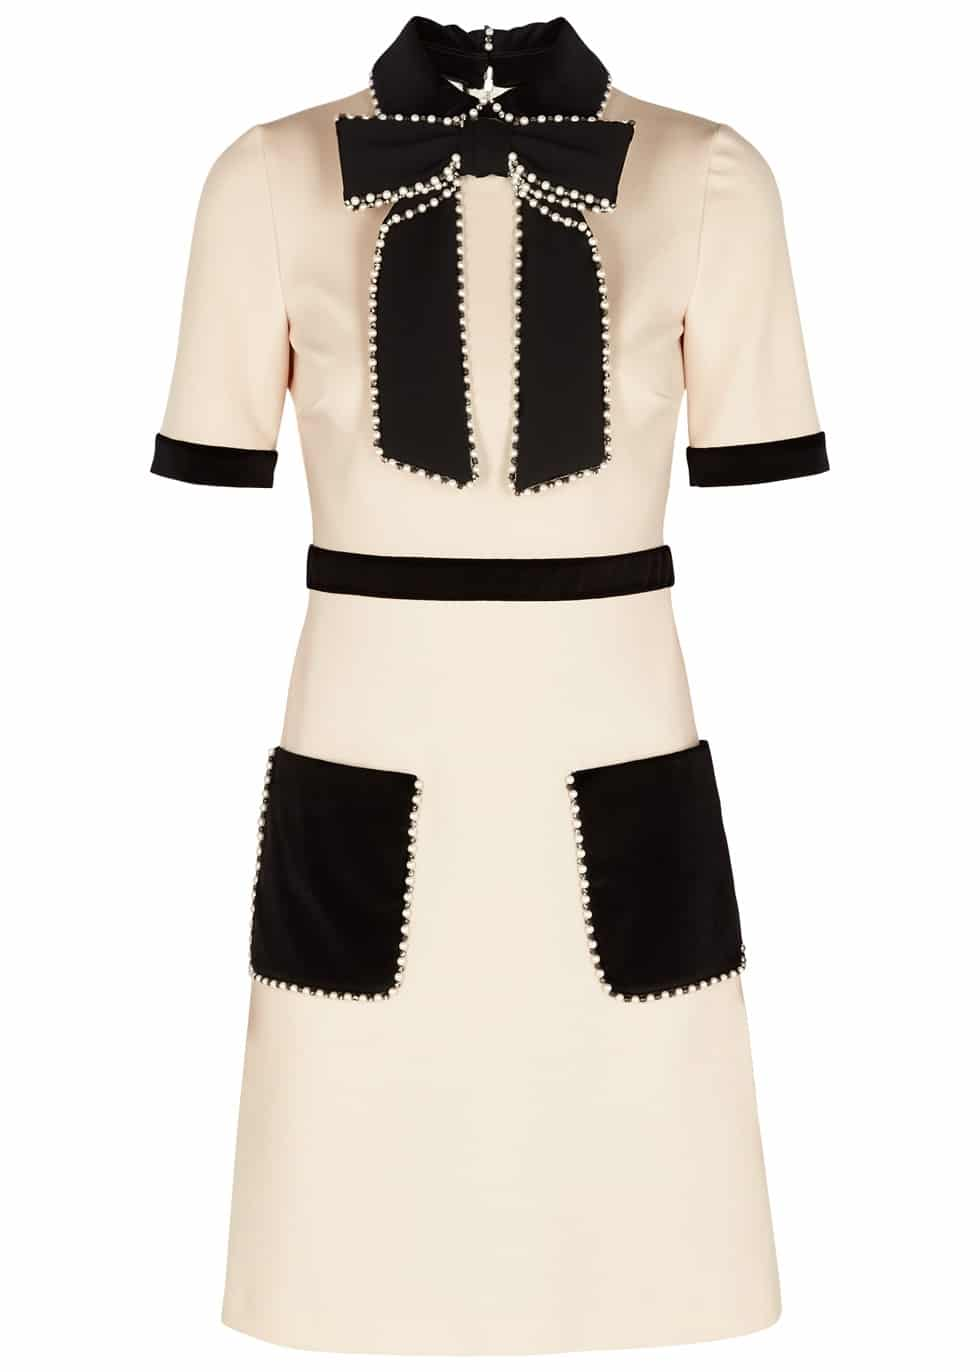 Gucci Ecru Embellished Stretch Knit Beige Dress We